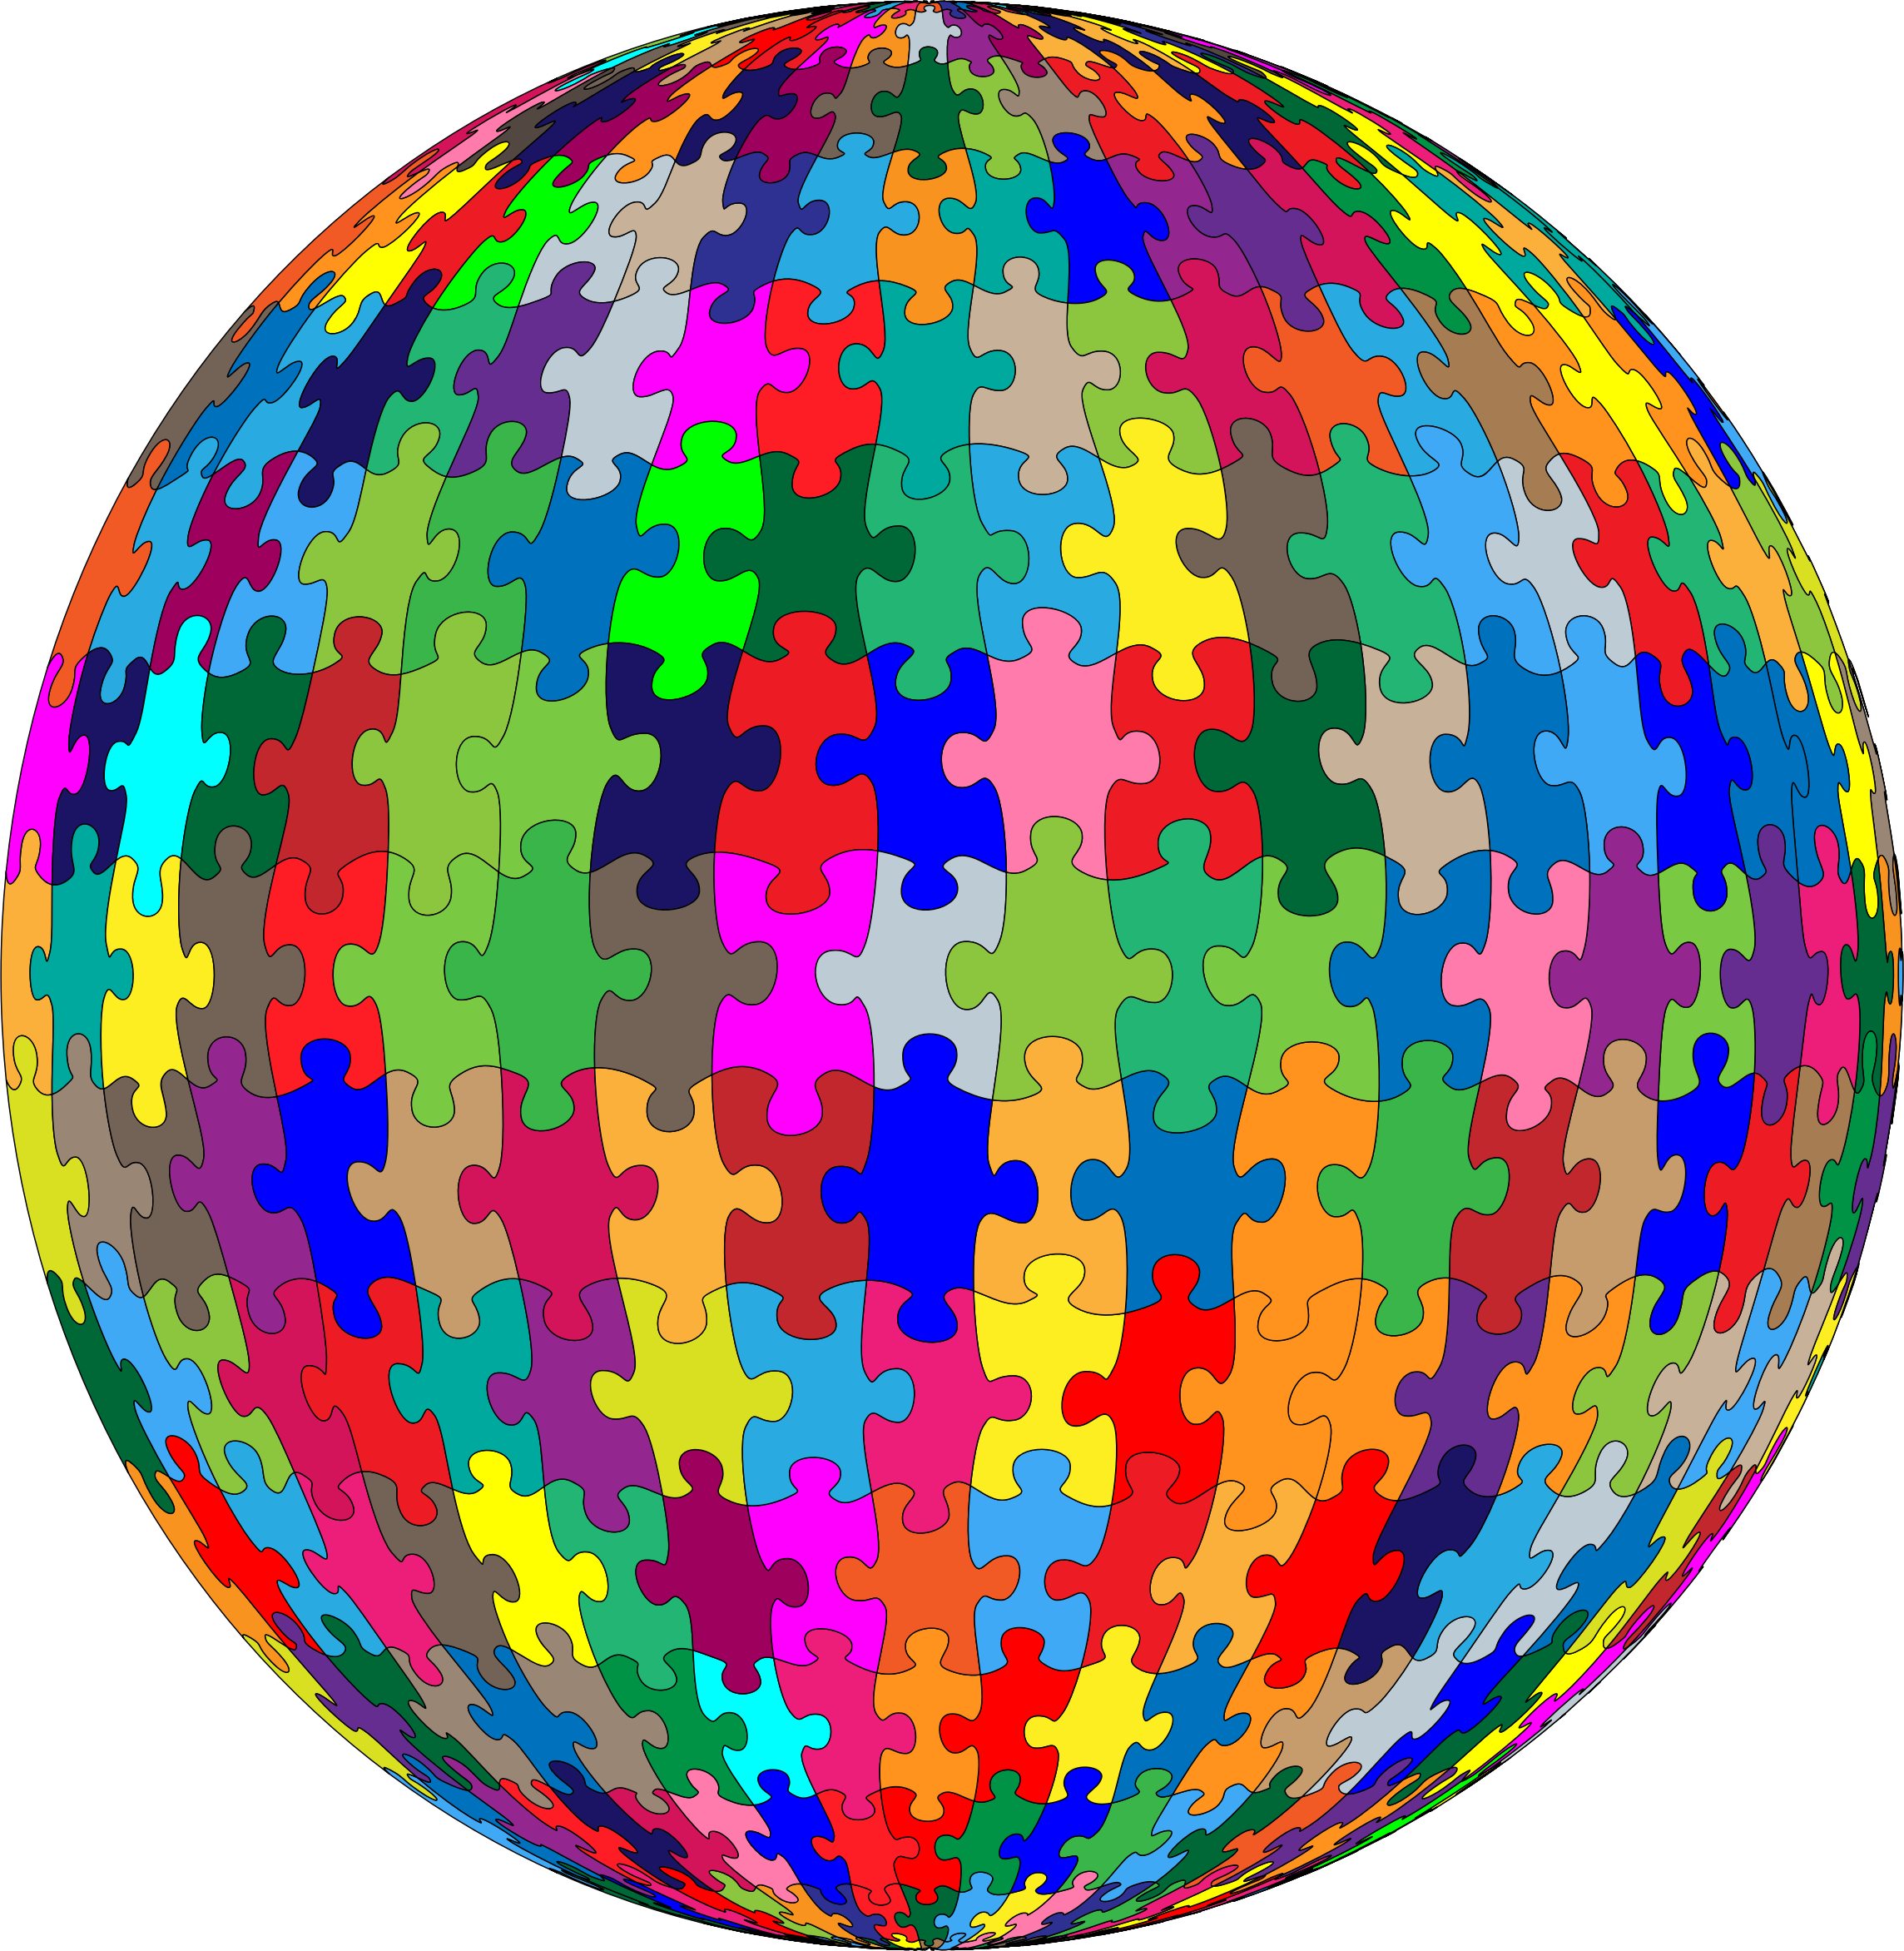 Multicolored Jigsaw Puzzle Pieces Sphere Jigsaw Puzzles Puzzle Pieces Sphere